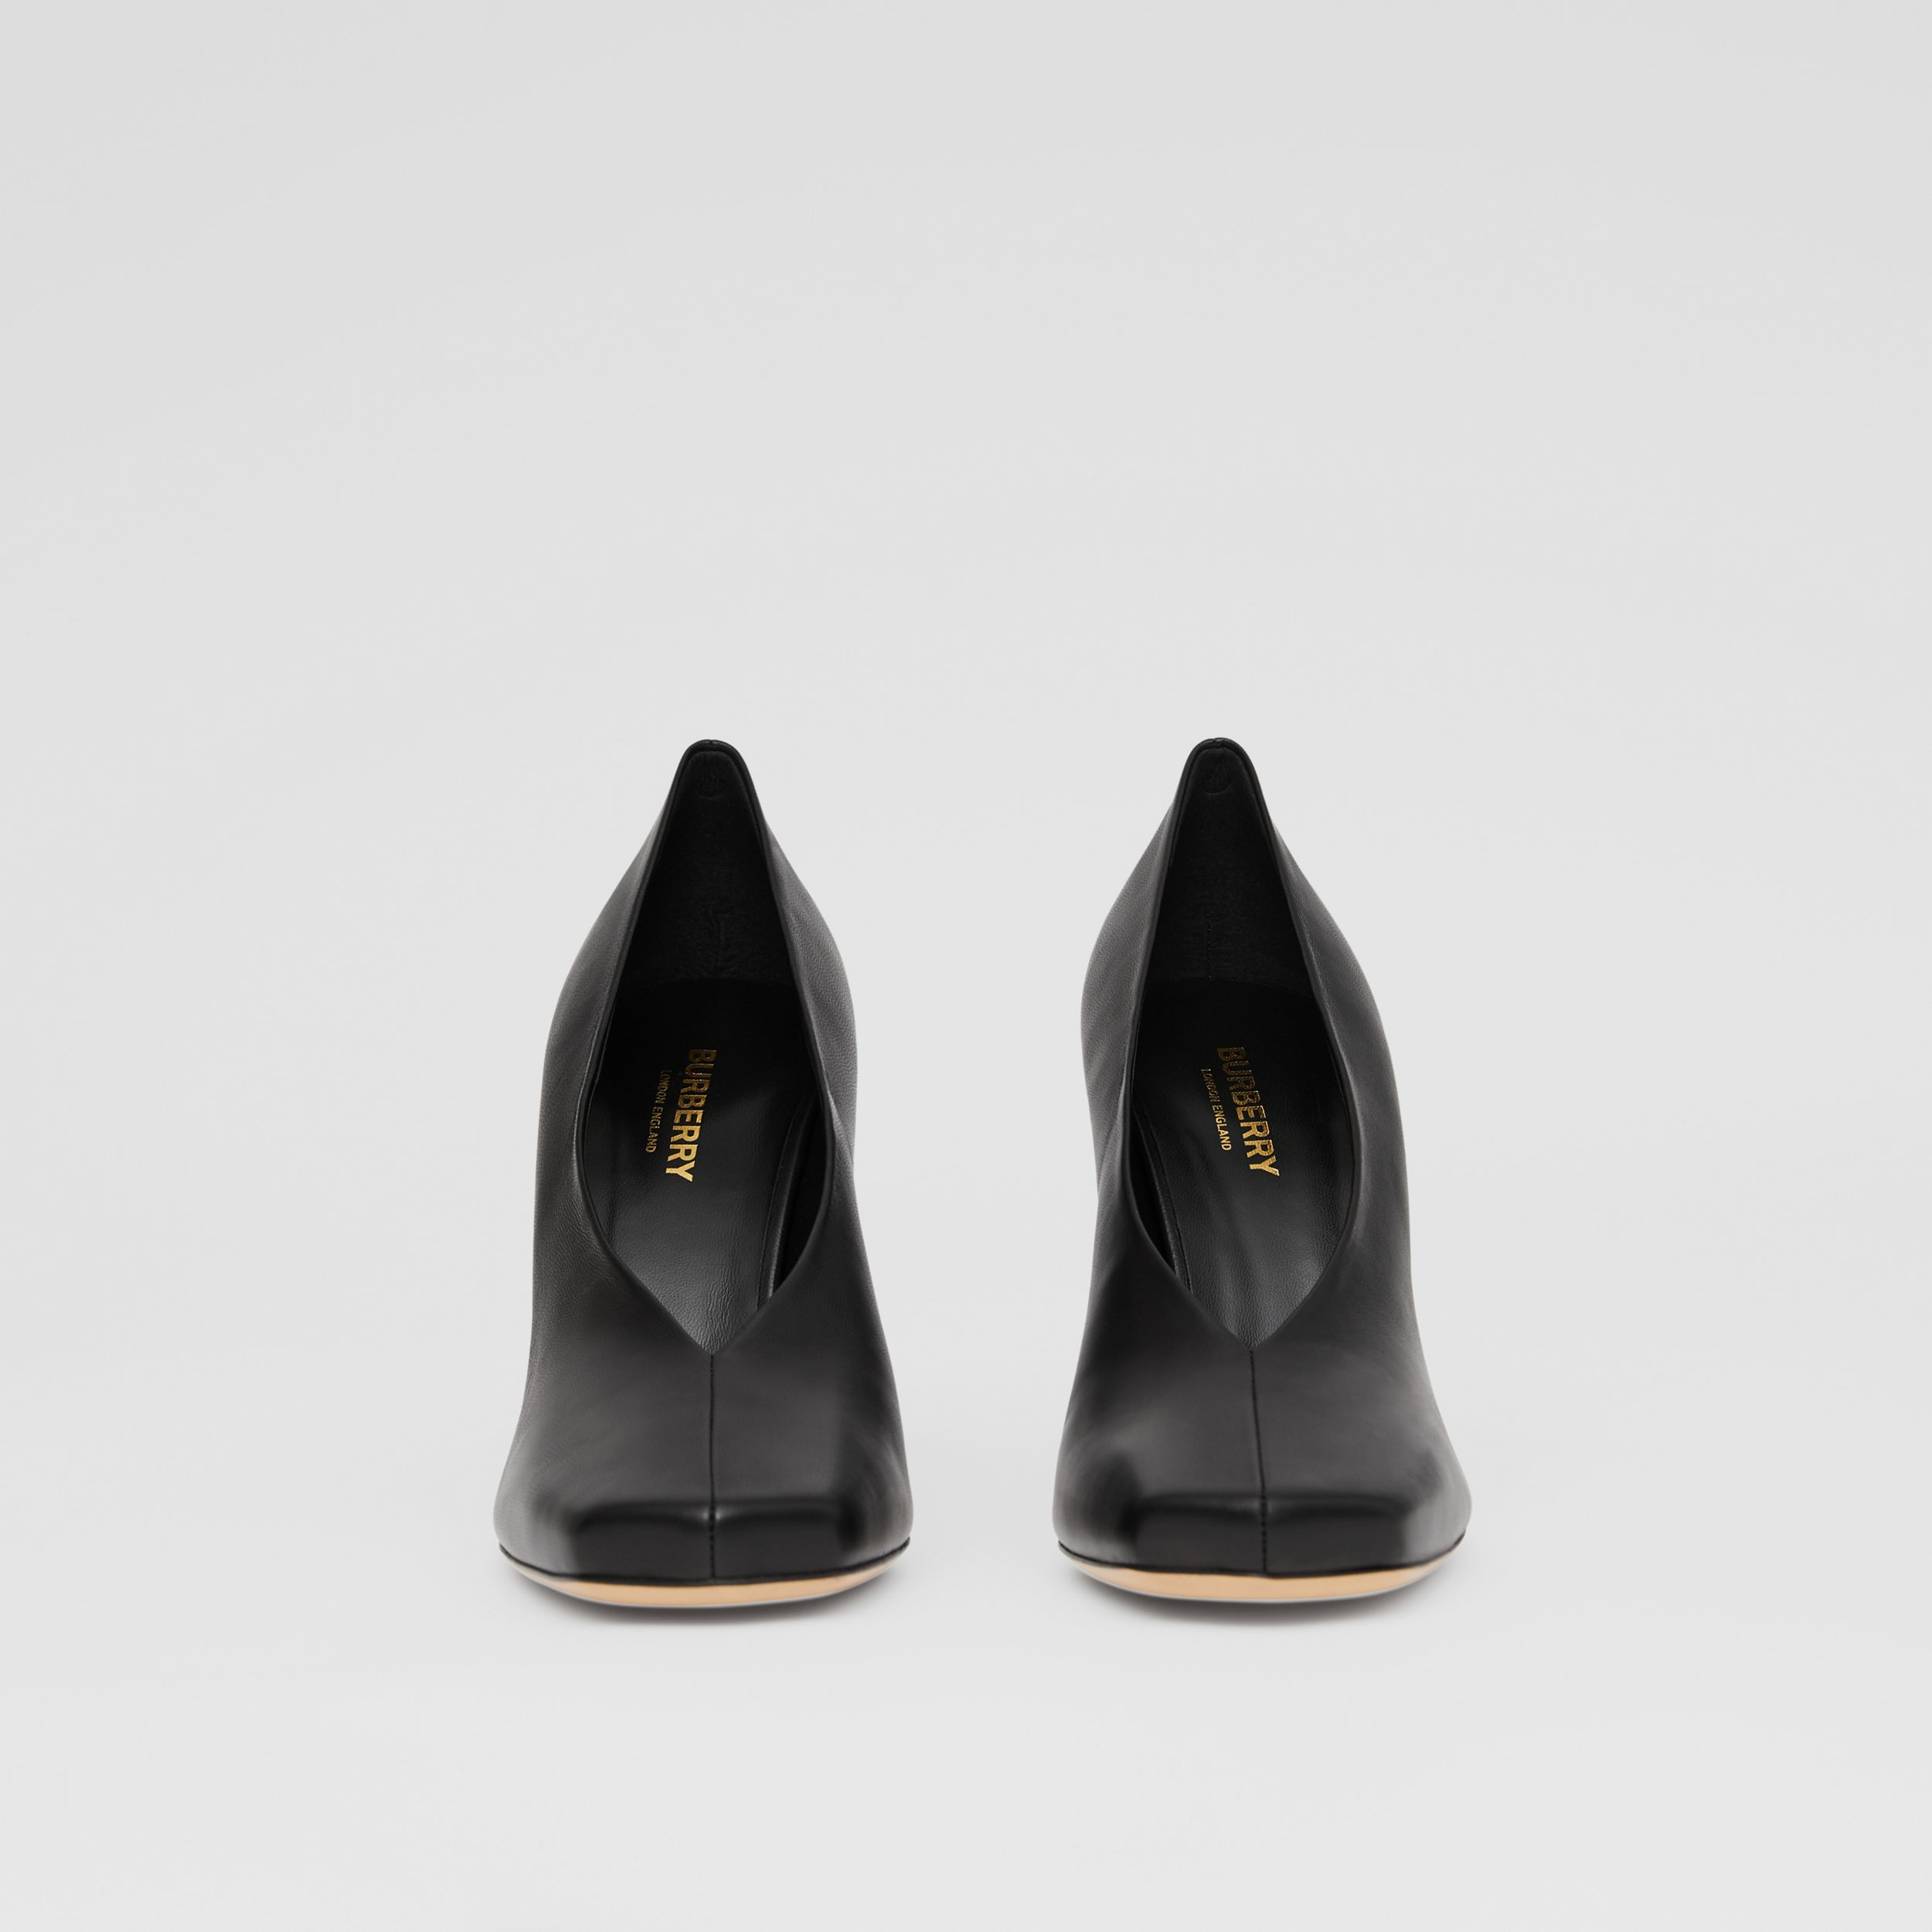 Lambskin Sculptural Pumps in Black - Women | Burberry - 4